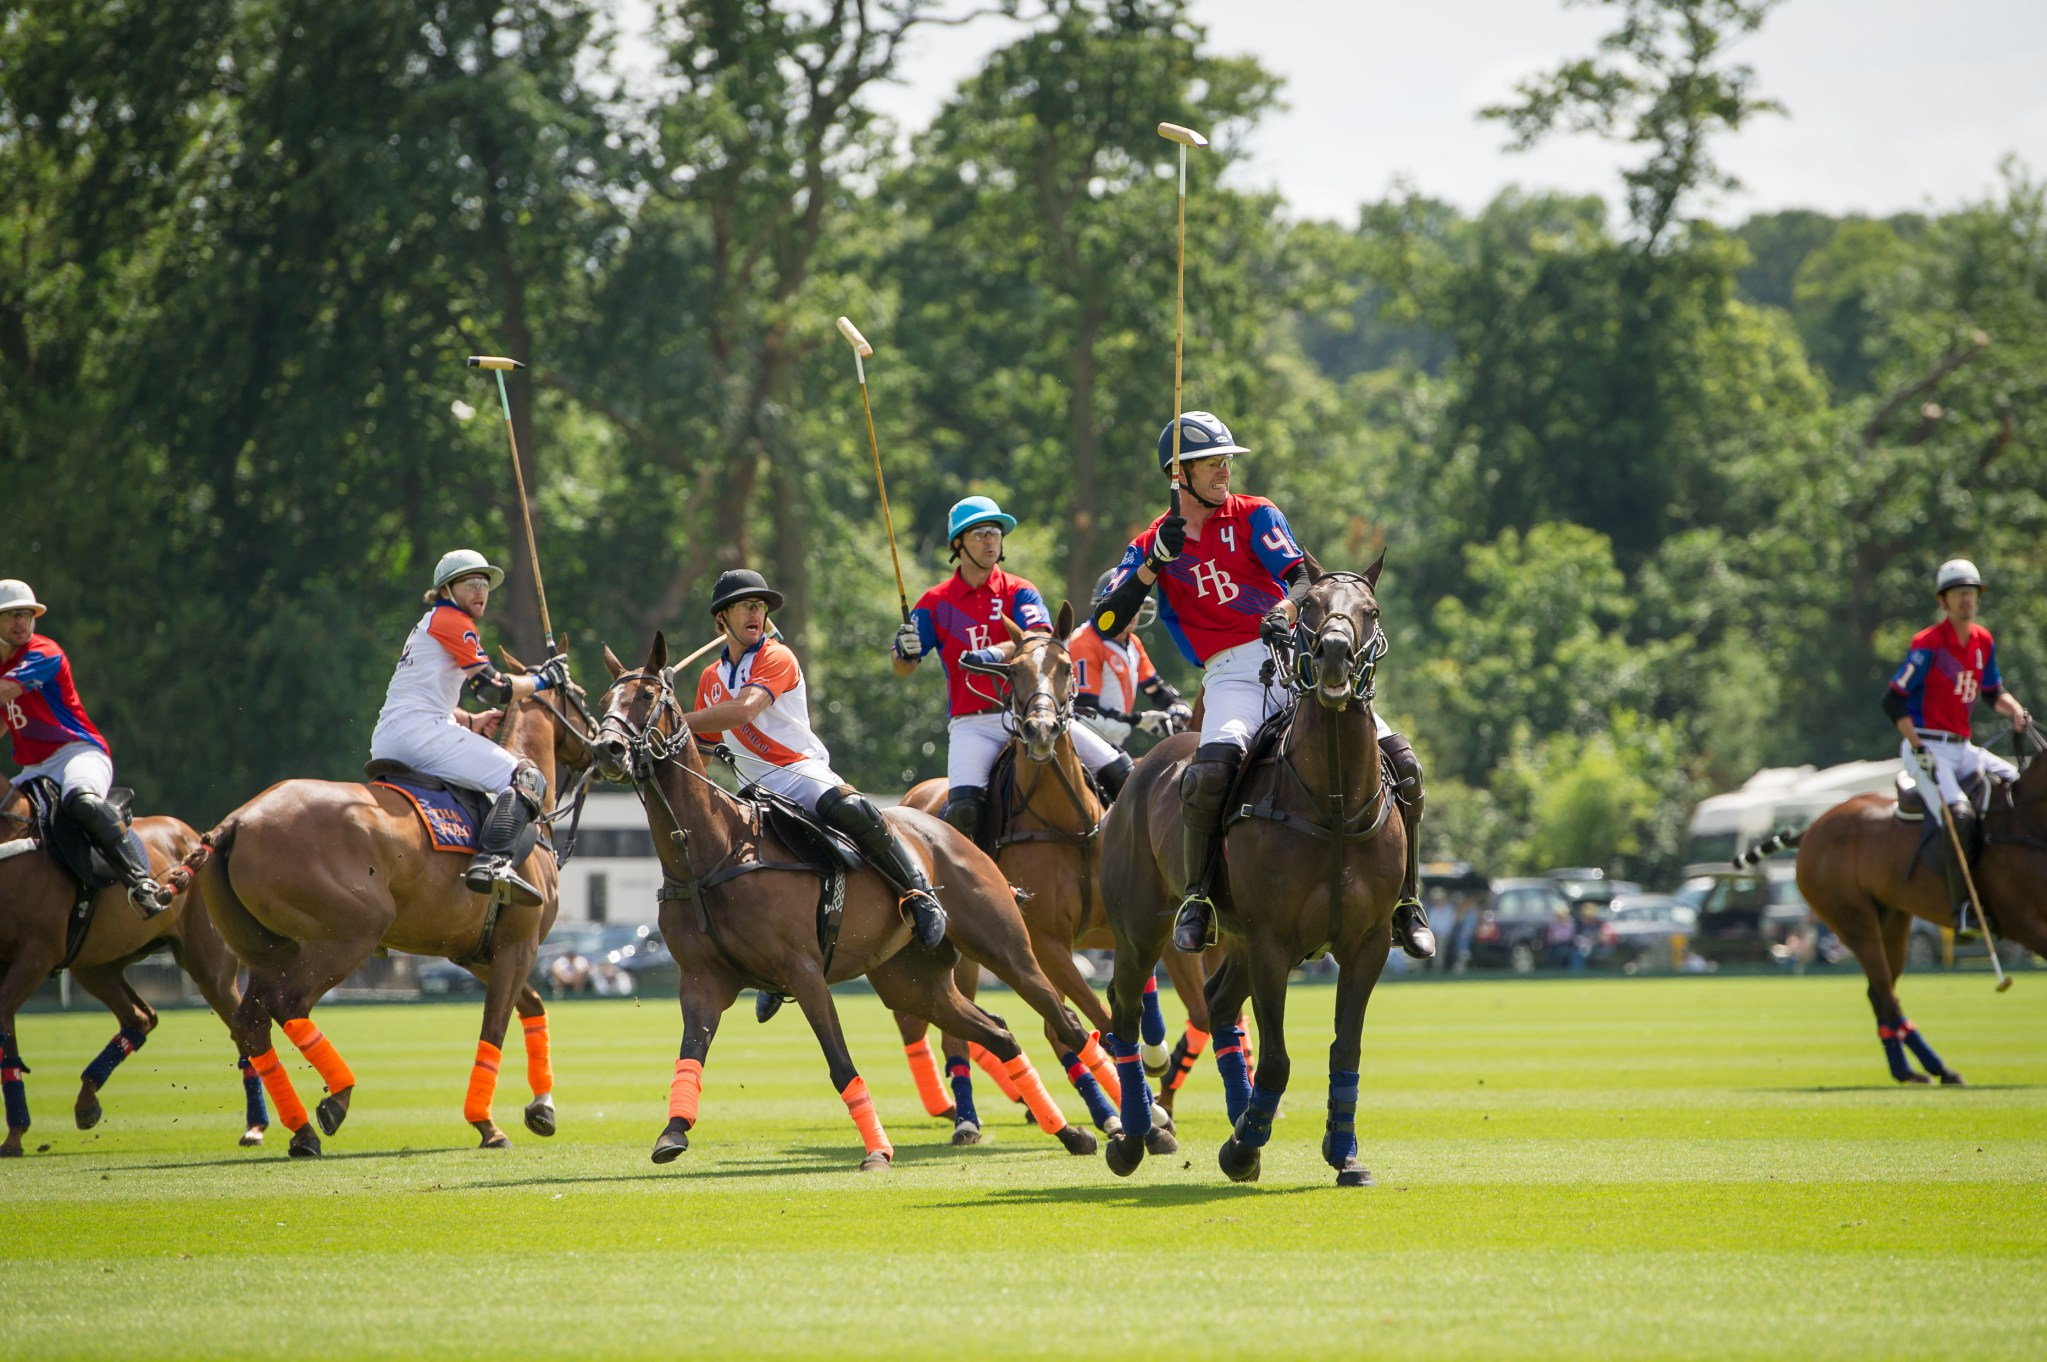 HB Polo & Thai Polo team competing at The Jaeger-LeCoultre Gold Cup for the British Polo Championships at Cowdray Park Polo Club